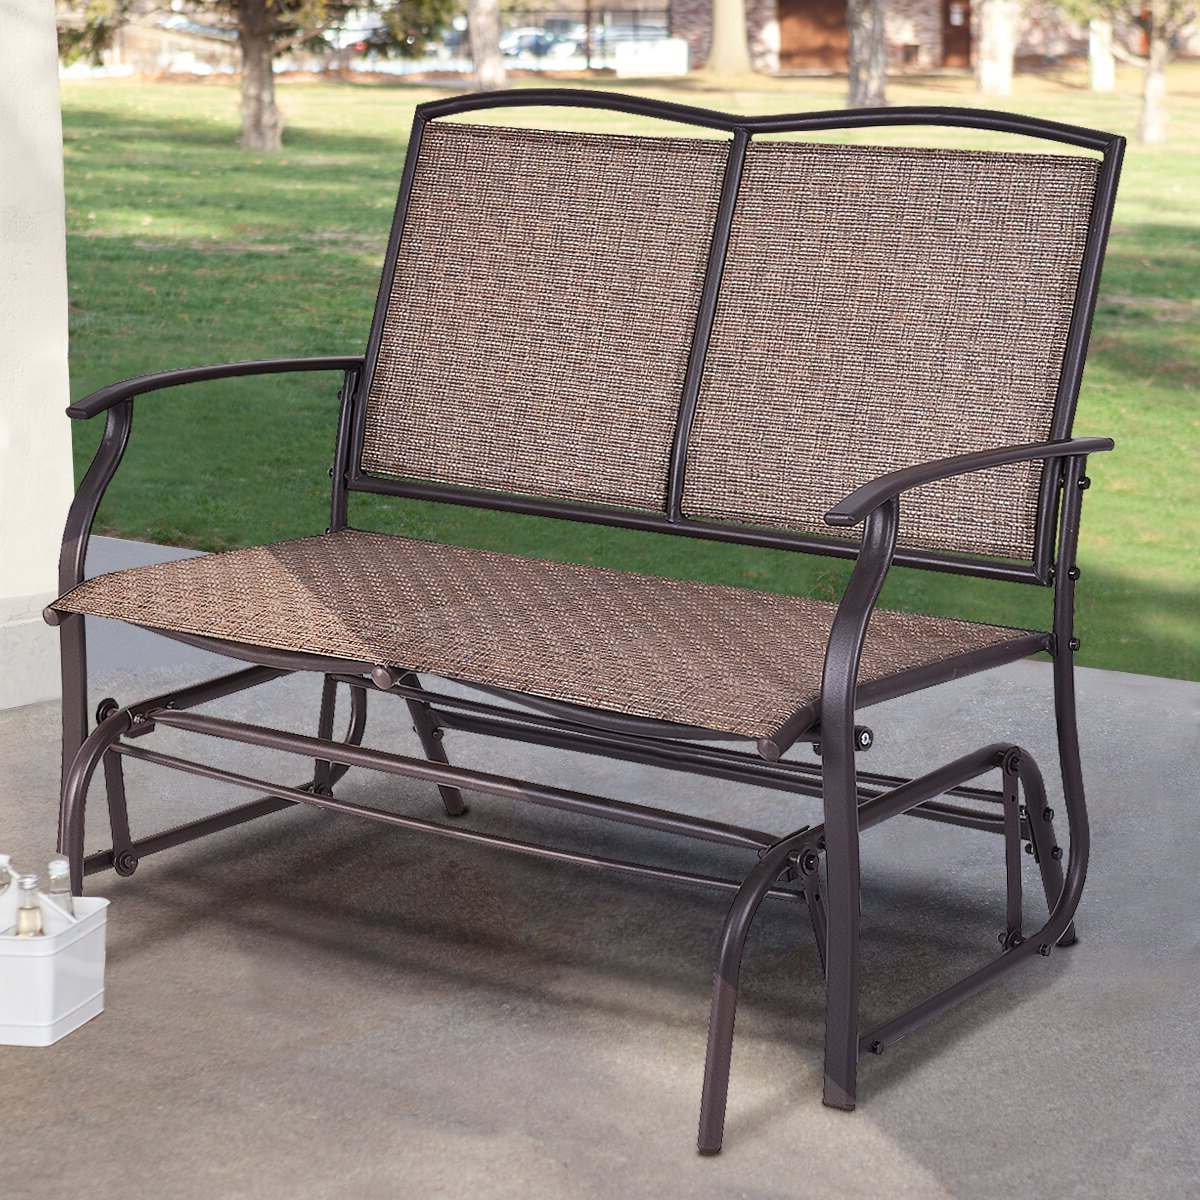 Costway Patio Glider Rocking Bench Double 2 Person Chair Loveseat Armchair Backyard Within Most Recently Released Twin Seat Glider Benches (View 23 of 31)